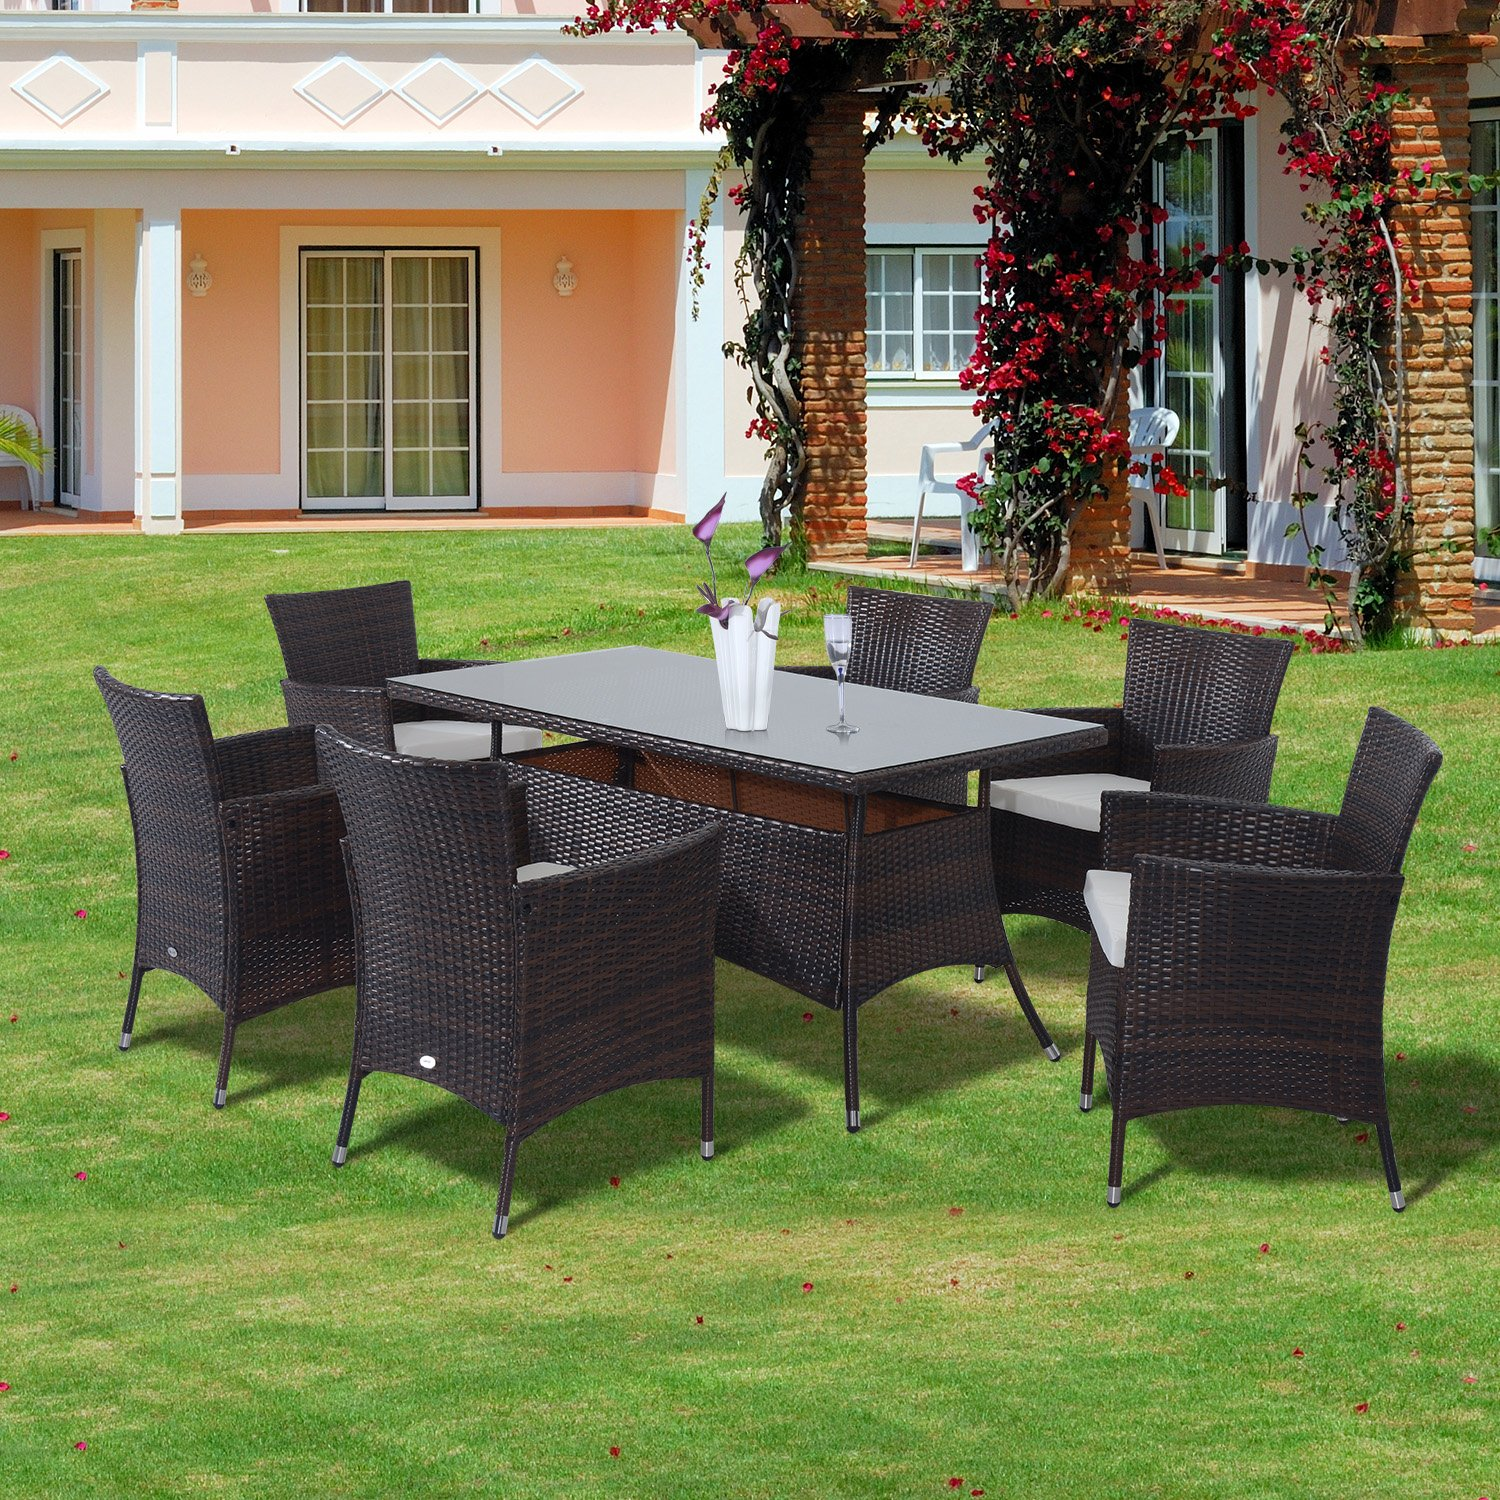 savannah rattan round glass dining table and 6 seat chair set